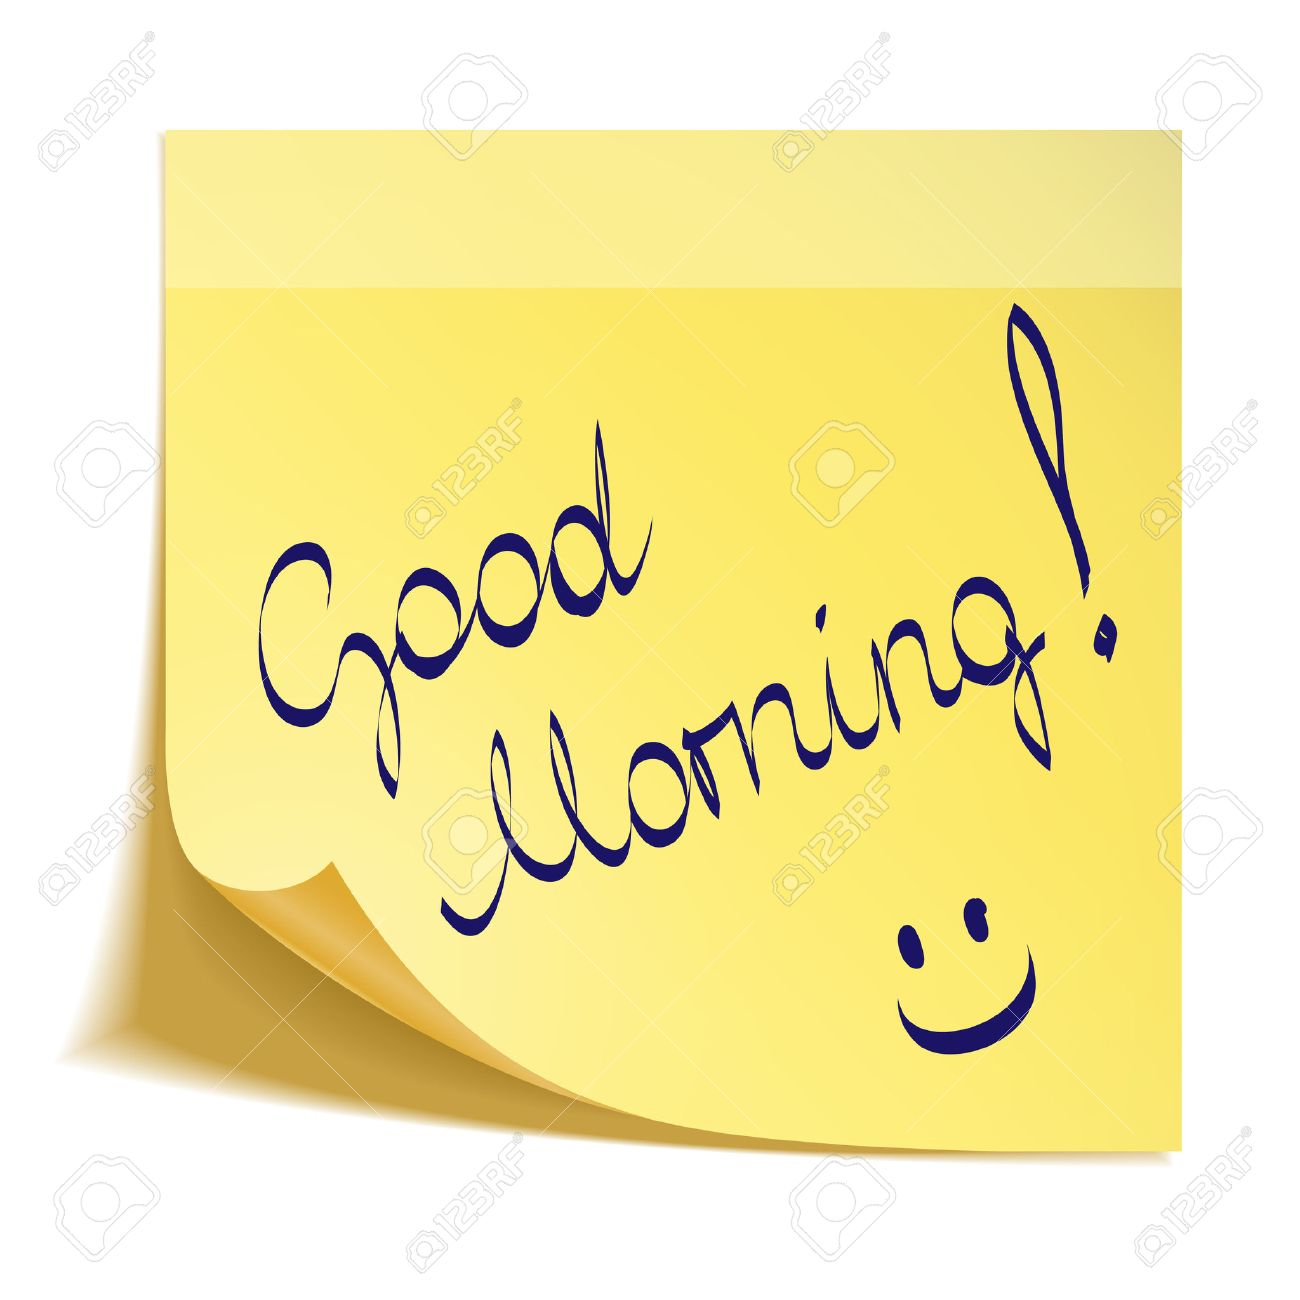 Good Morning Note With Smiley Royalty Free Cliparts Vectors And